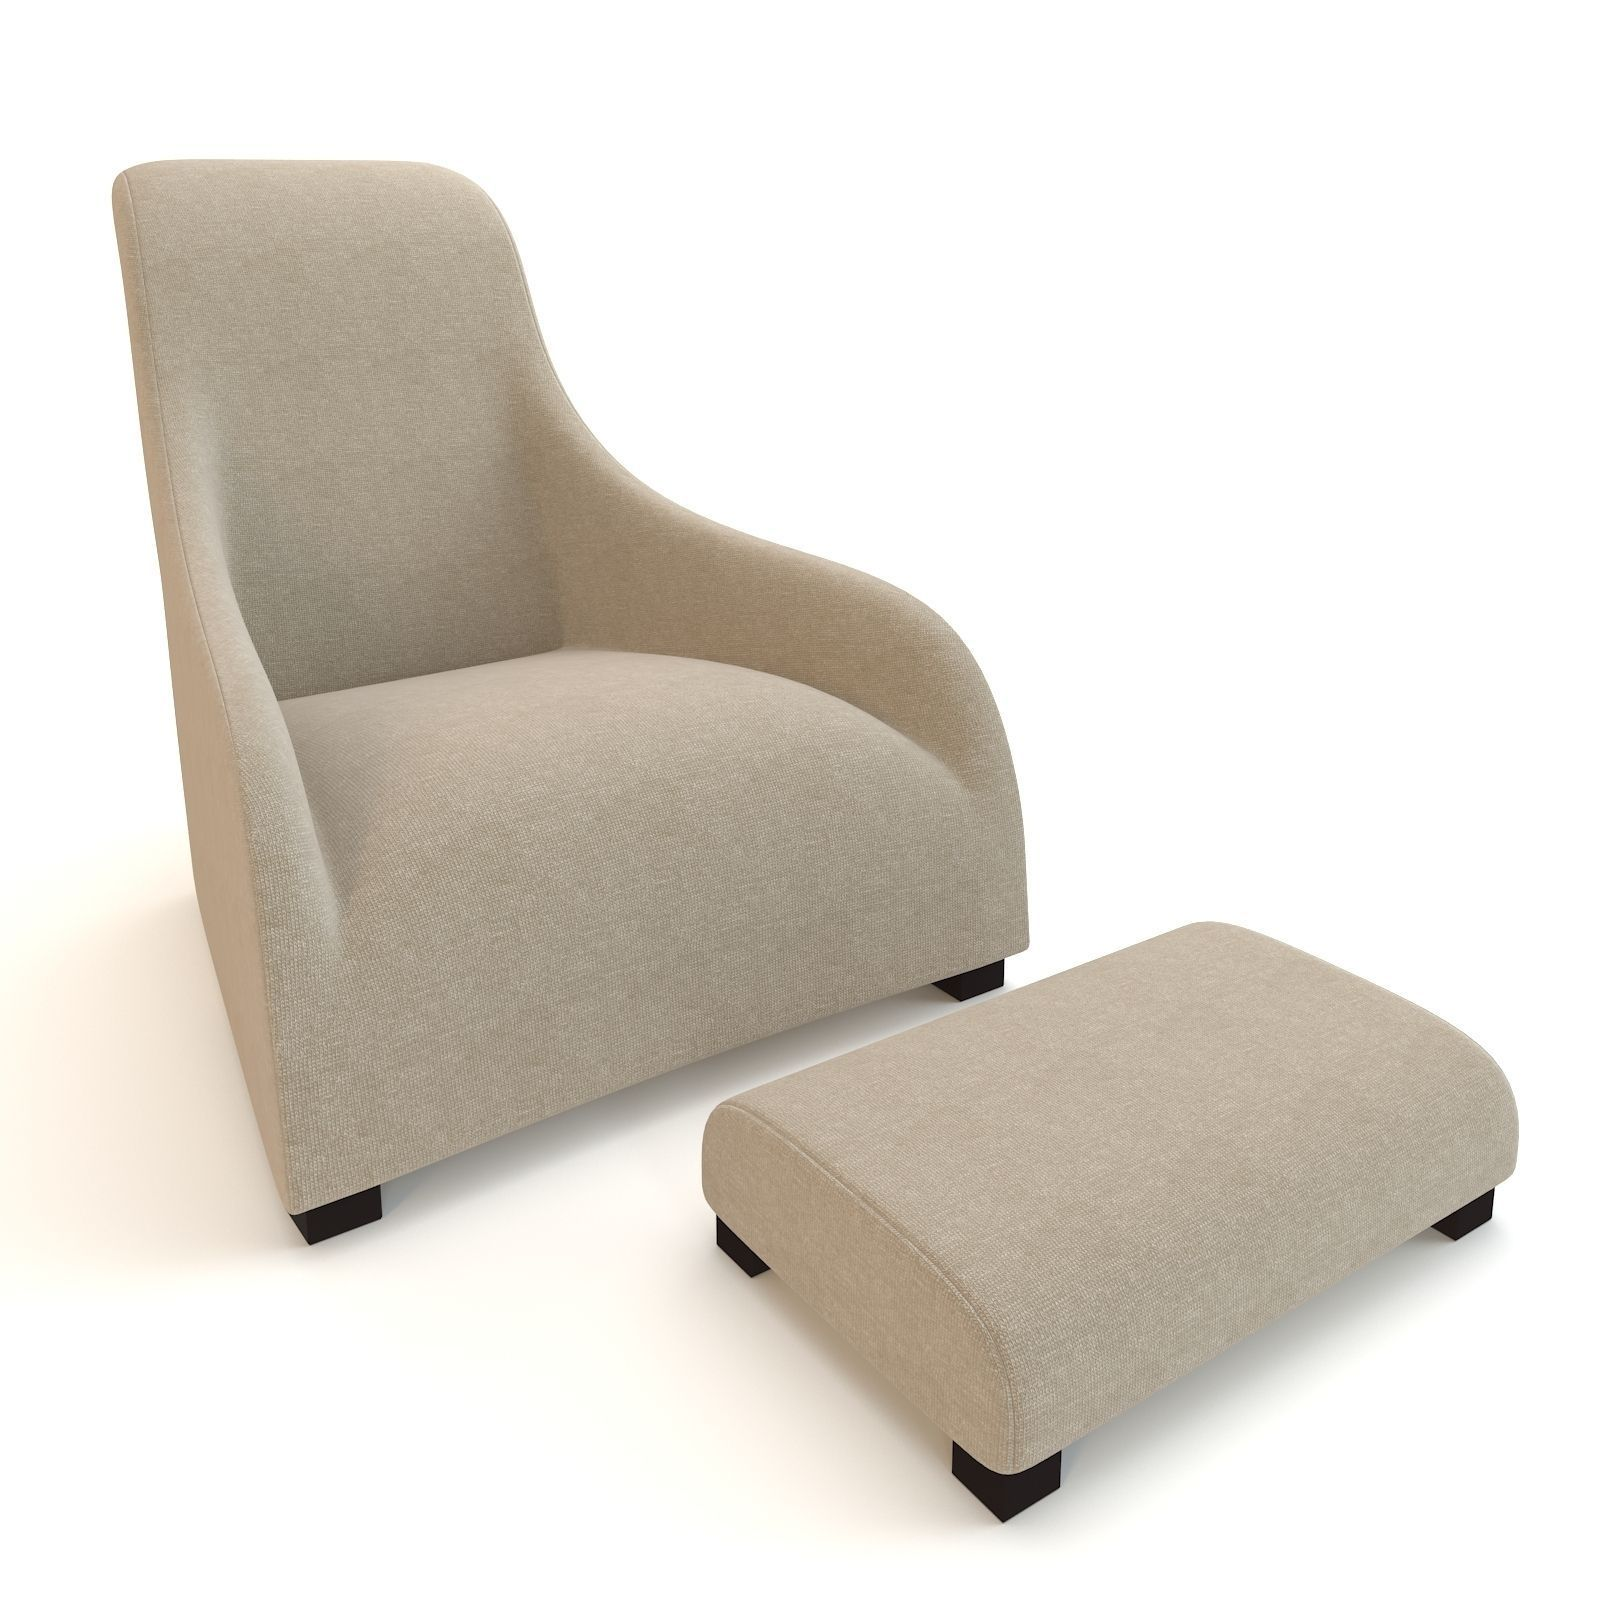 BebItalia Armchair Maxalto Kalos Apta With... 3D Model MAX